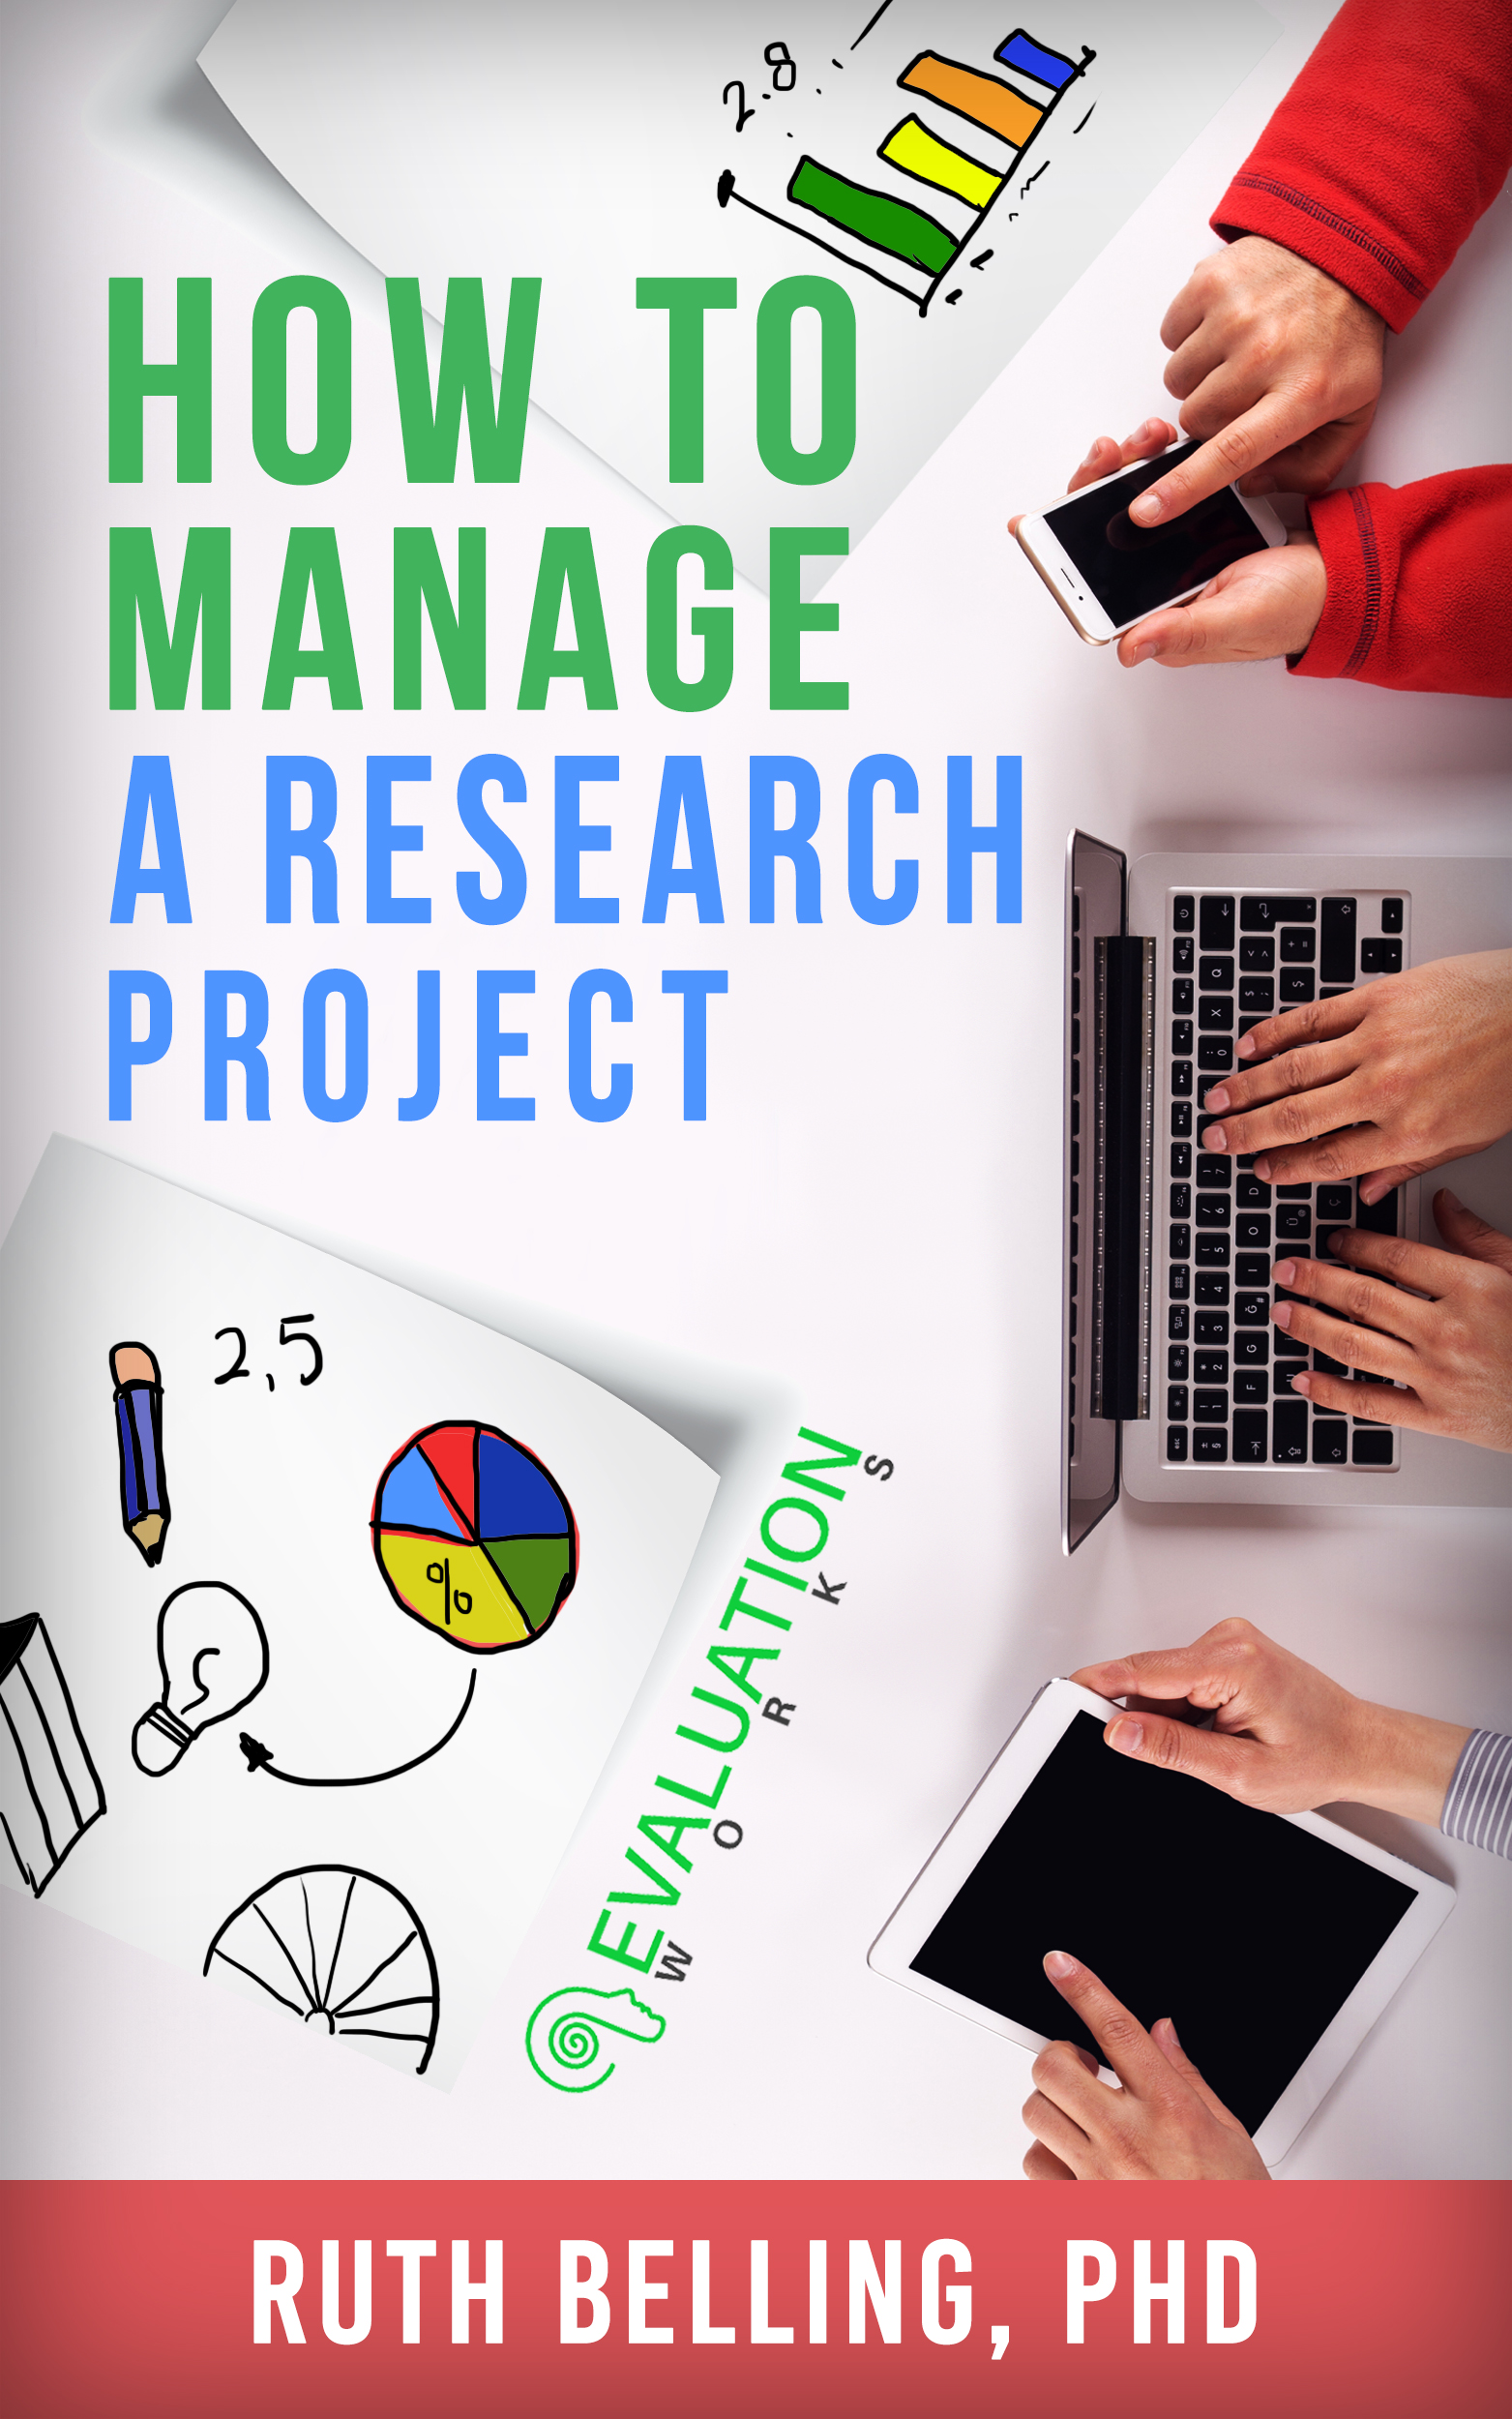 research project help Professional help with writing primary data for a research project is readily available and affordable at thesis - dissertation writing services.